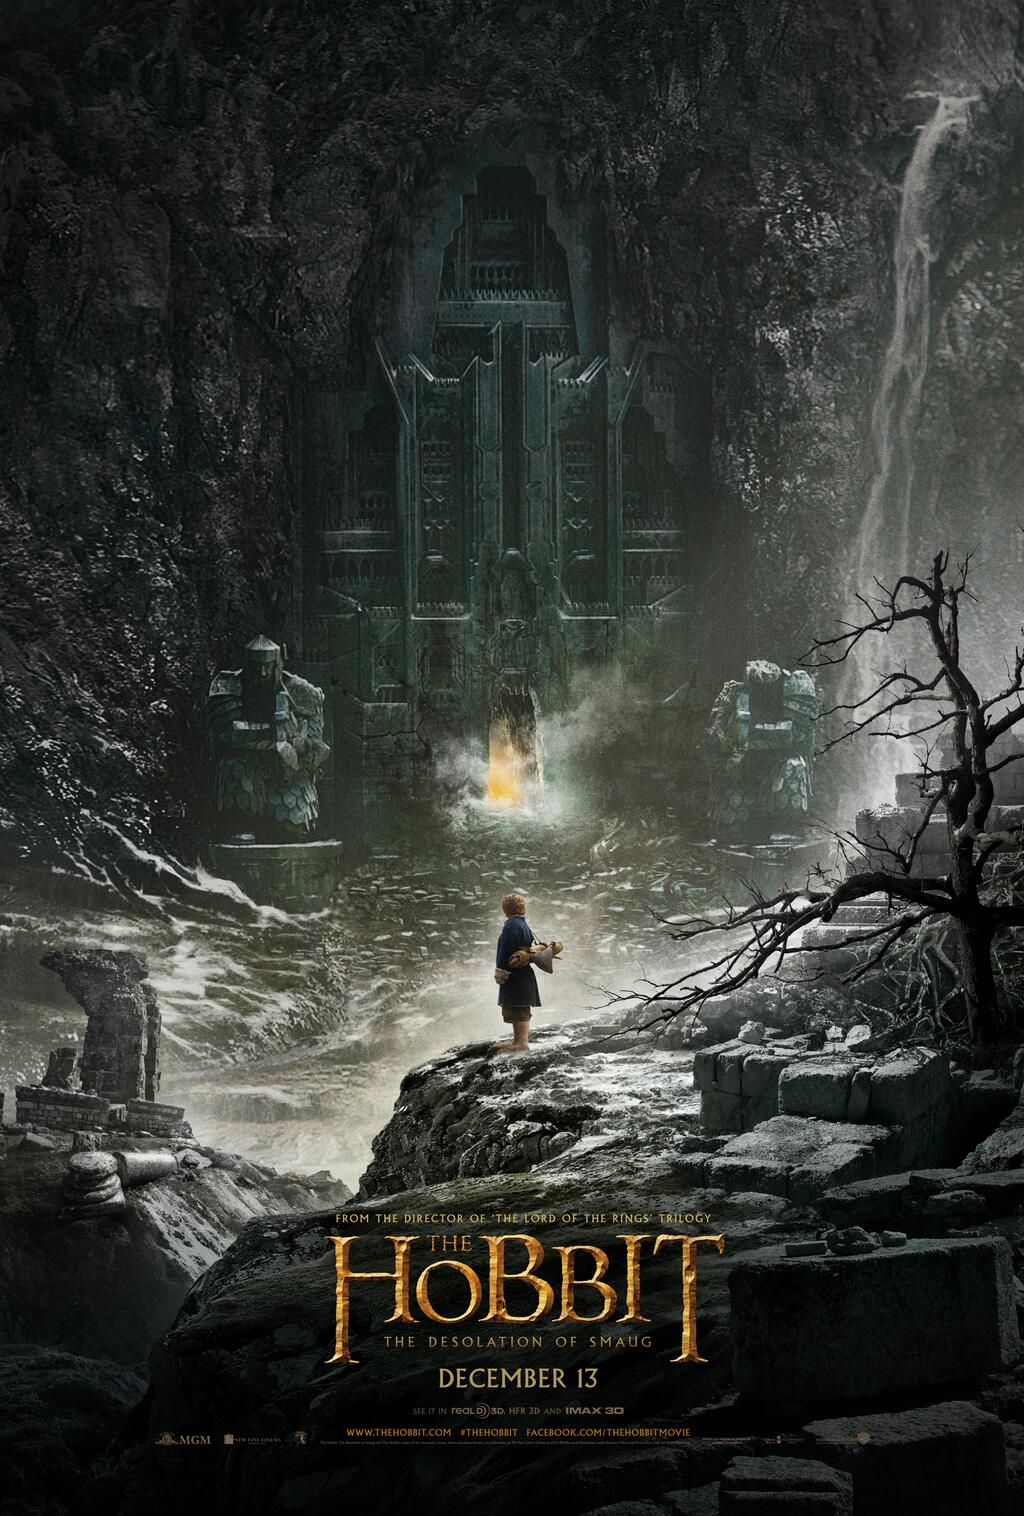 the-hobbit-the-desolation-of-smaug-poster.jpg